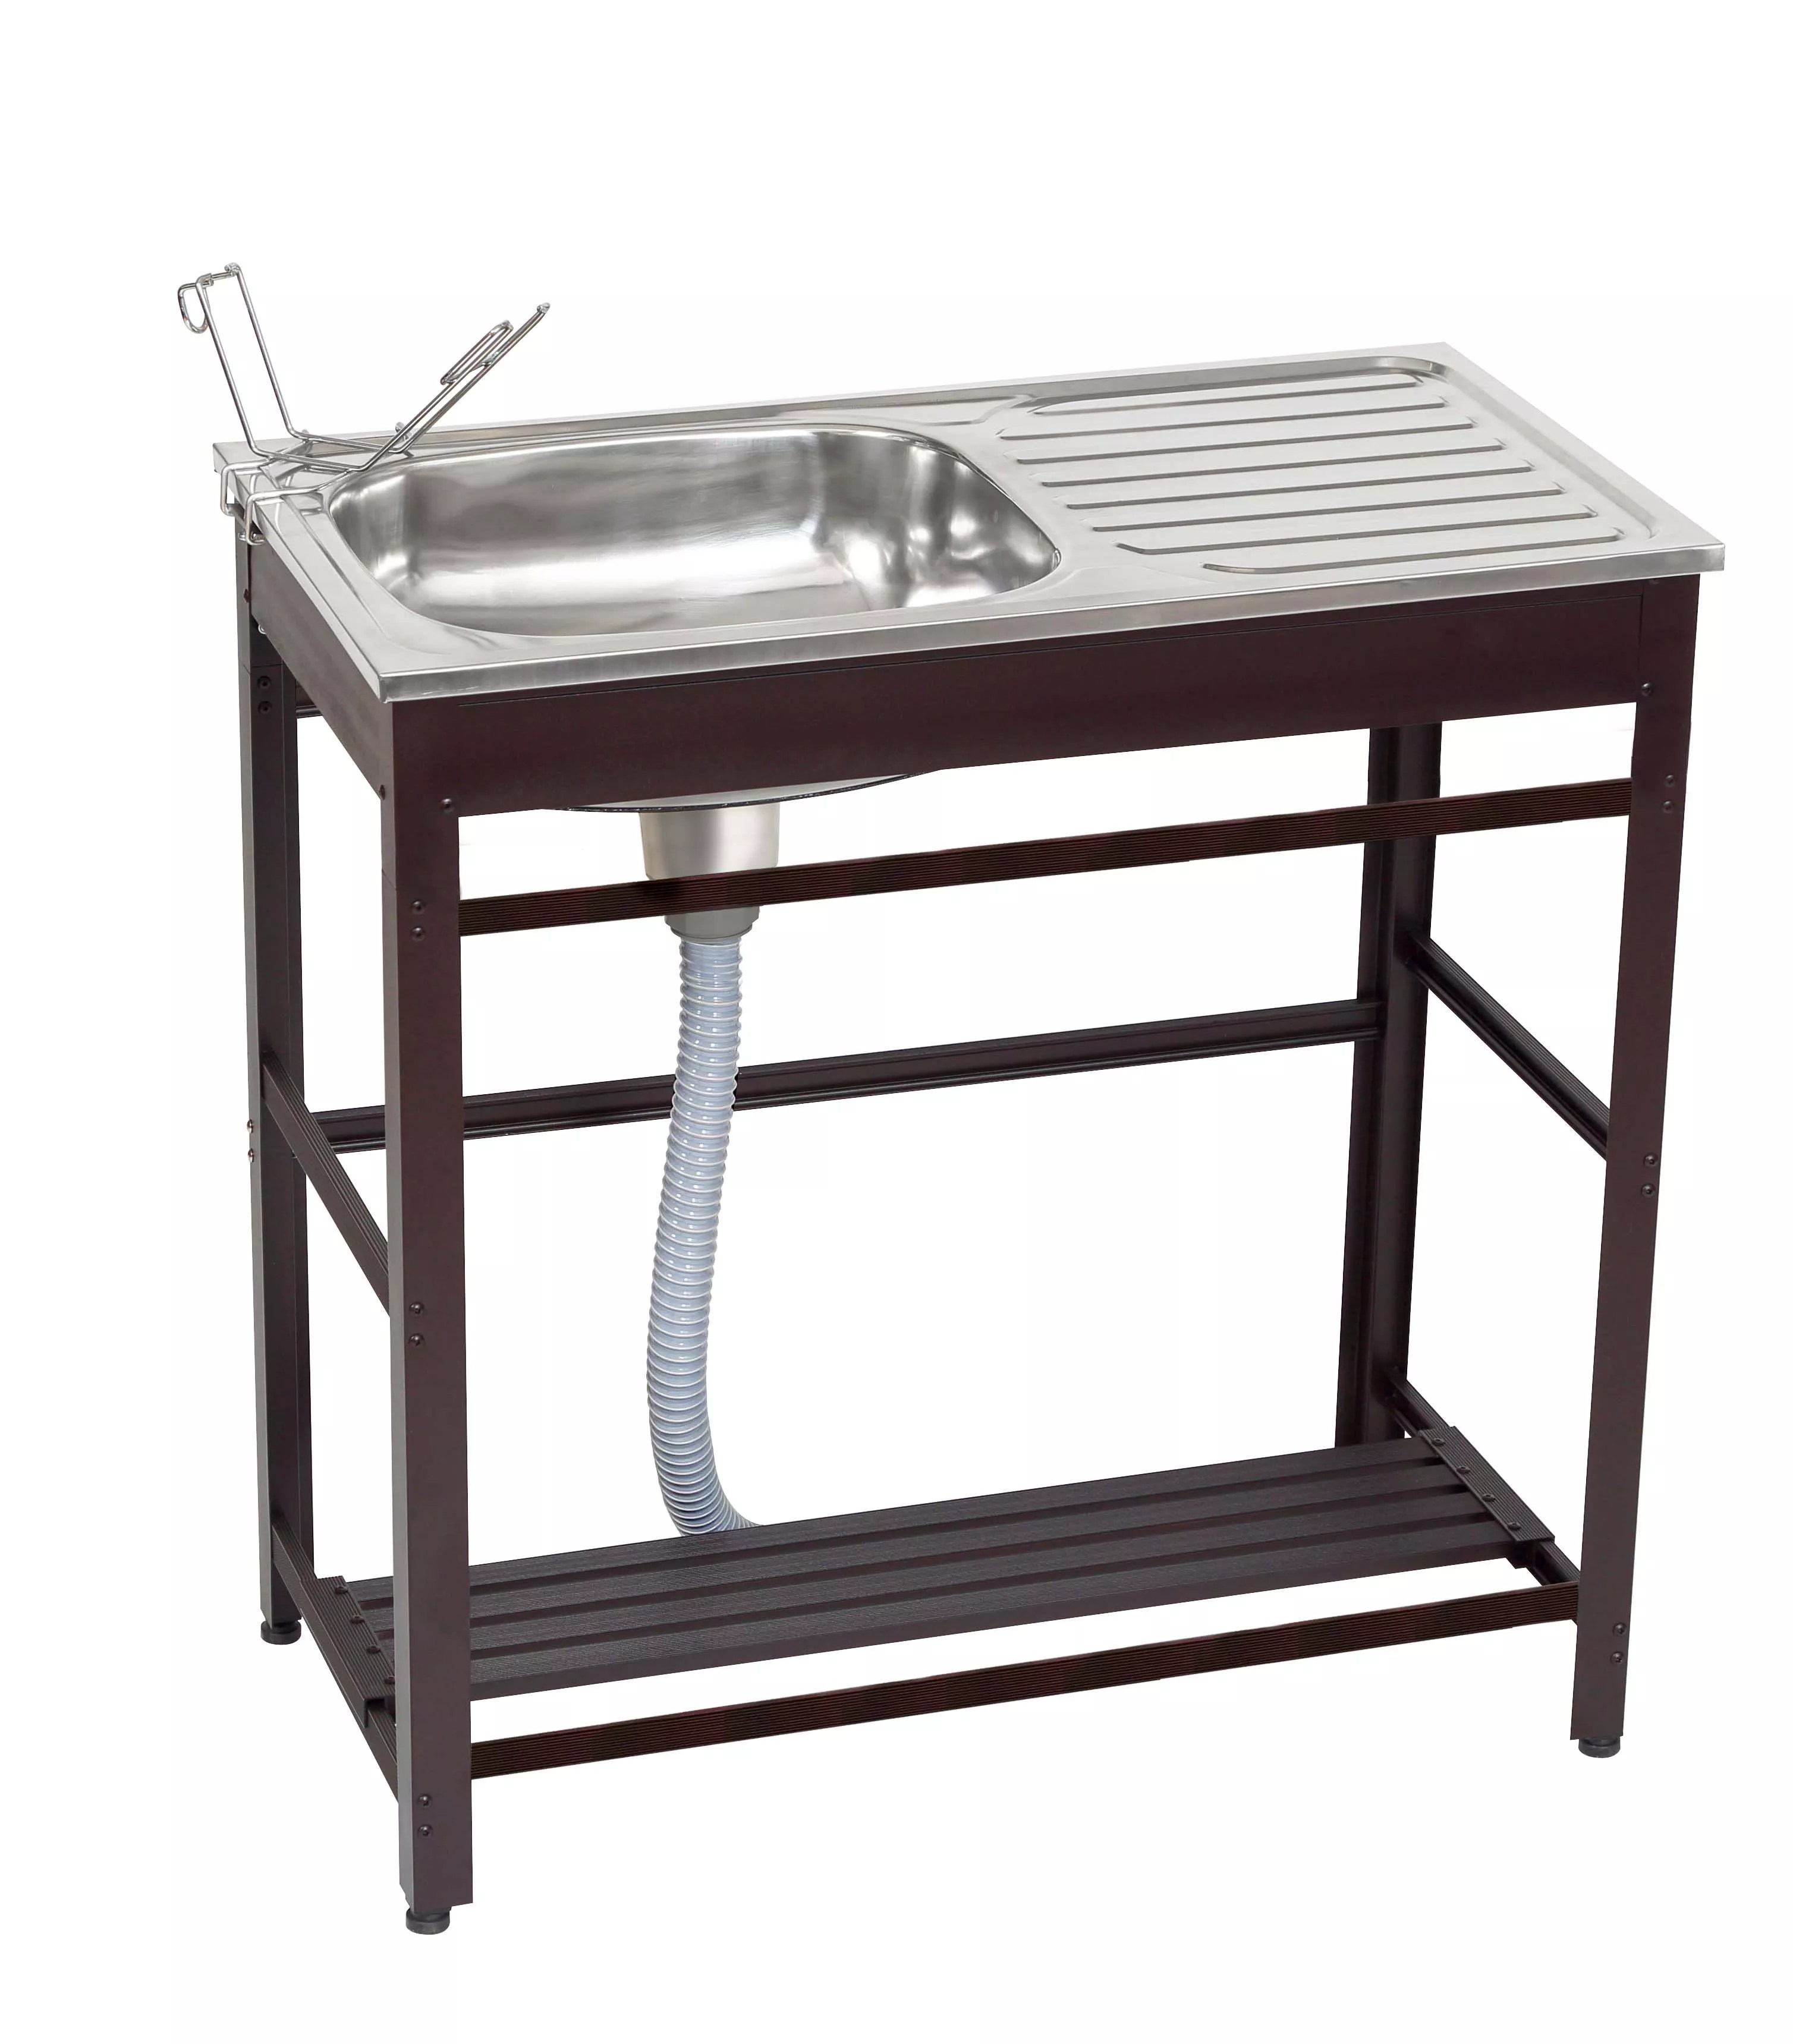 portable outdoor sink for garden and yard use stainless steel material easy to carry natural brown color garden sink buy universal stainless steel